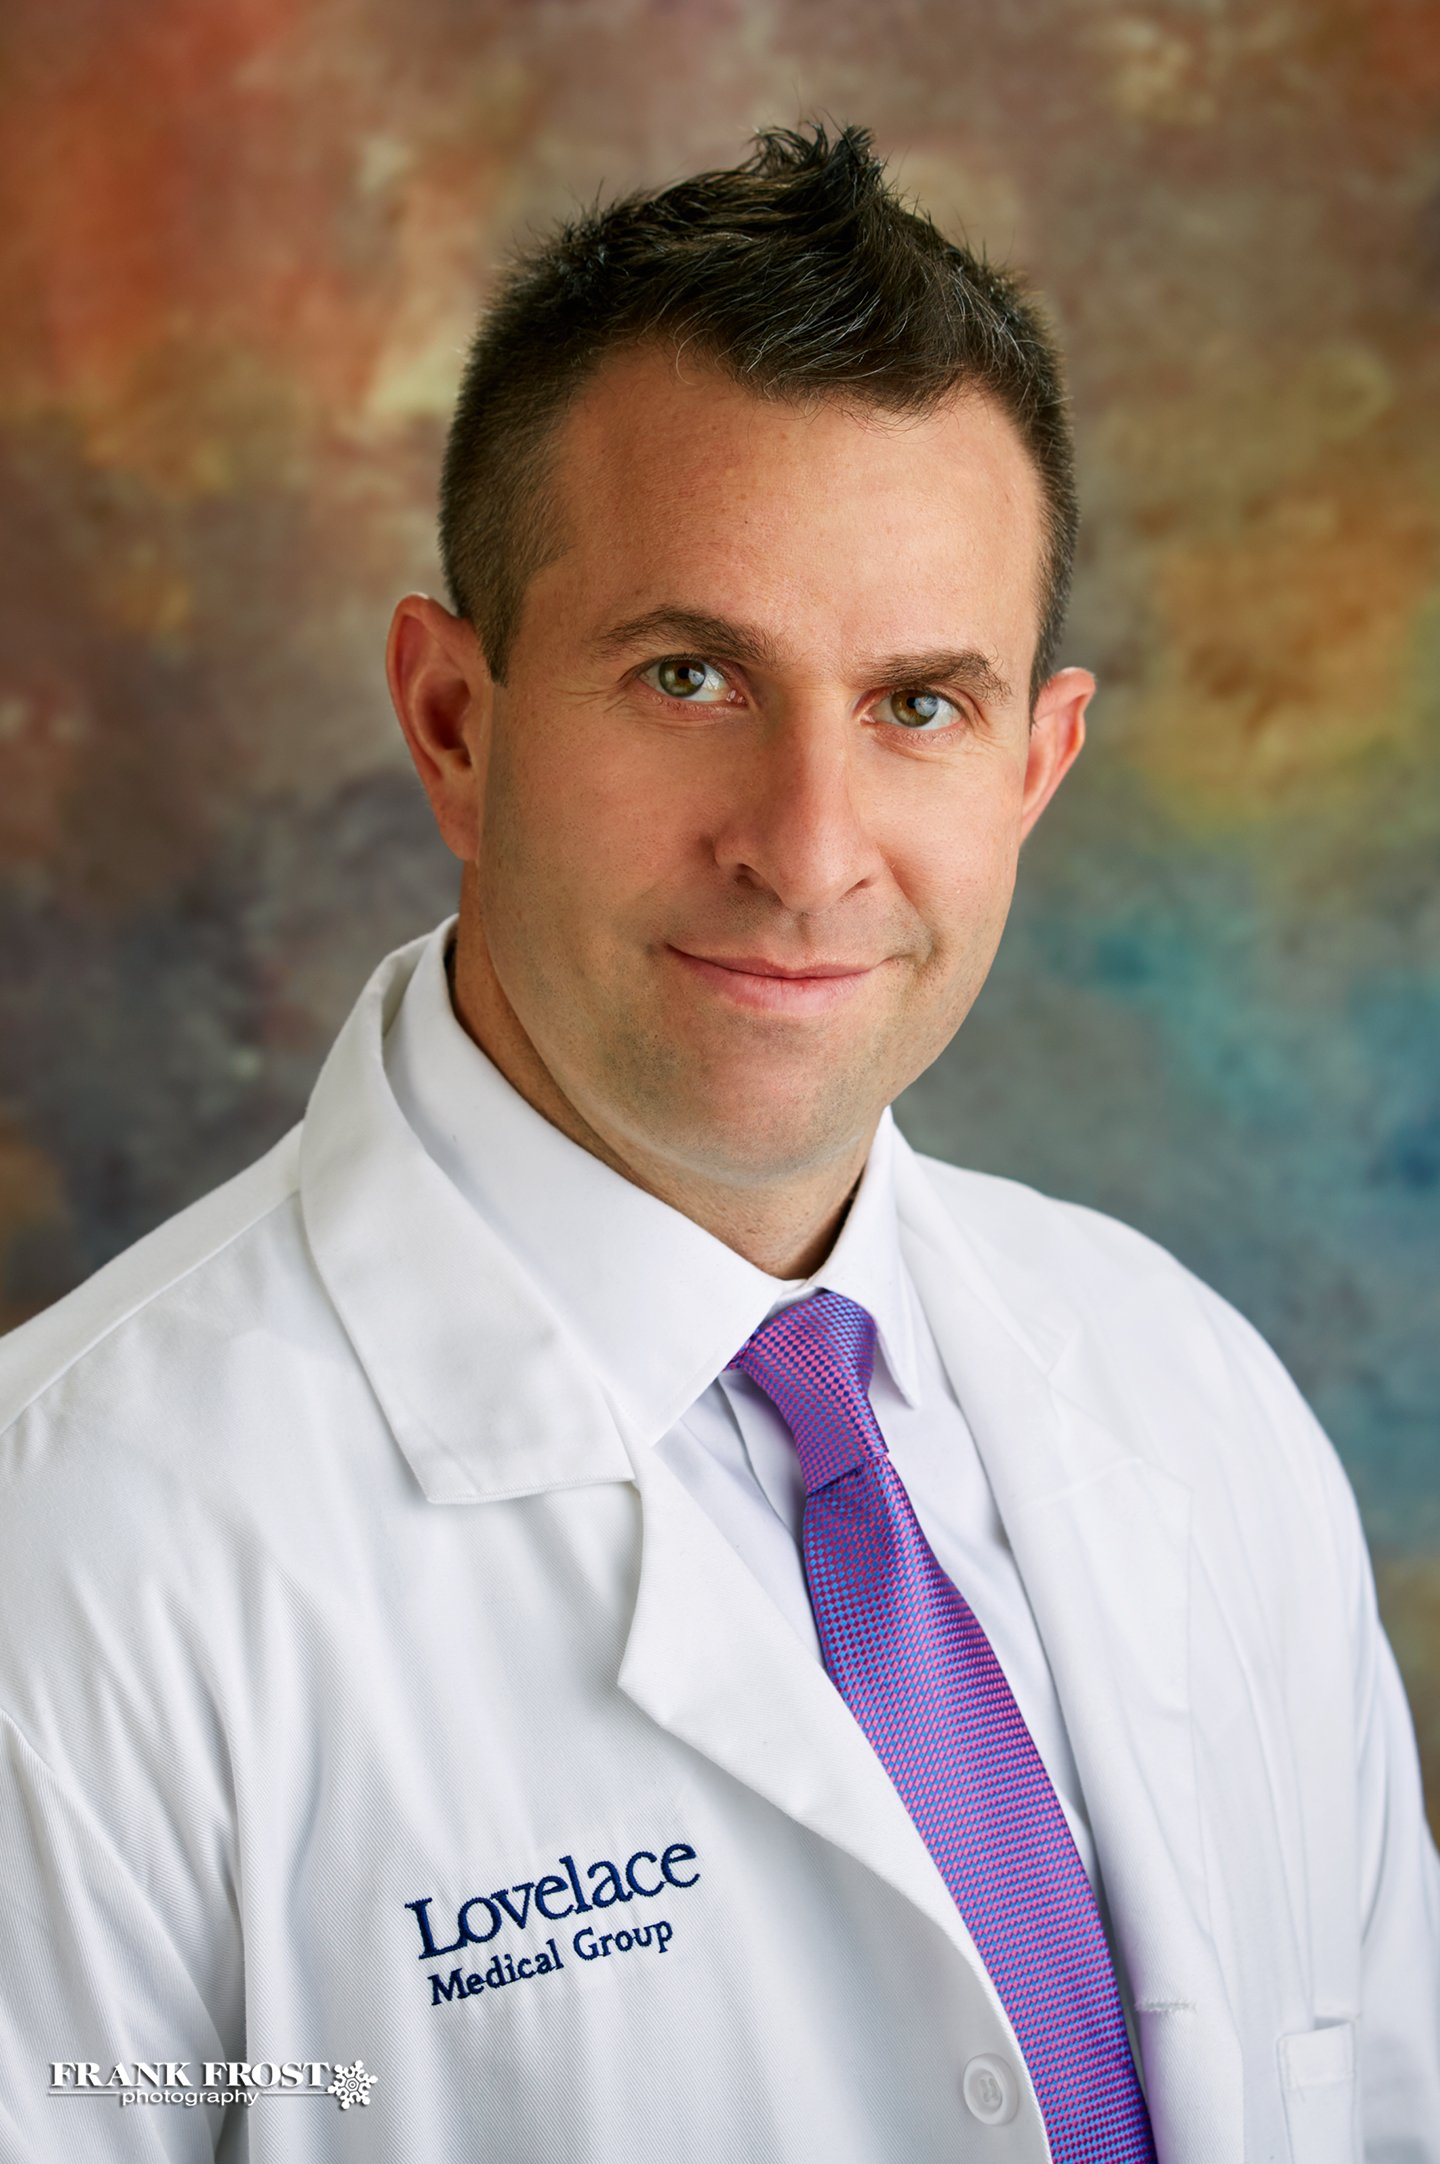 Dr. Andrew Grollman